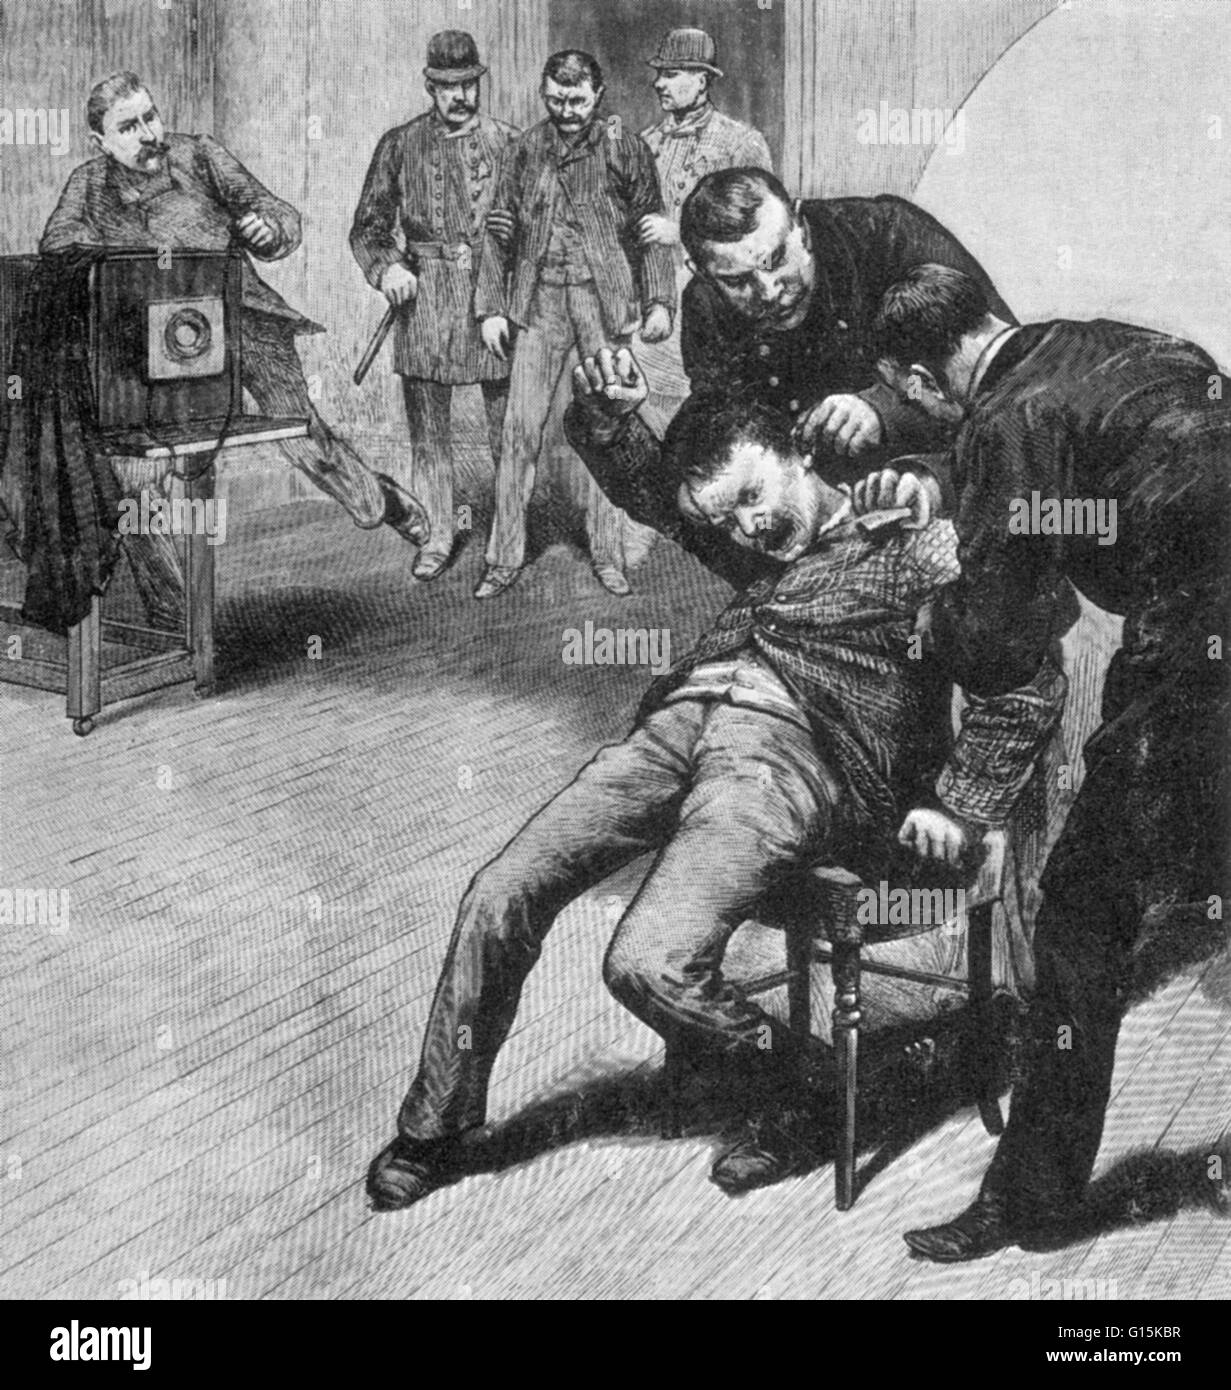 An illustration of a criminal being held down for a mug shot at police headquarters during the anarchist trials - Stock Image